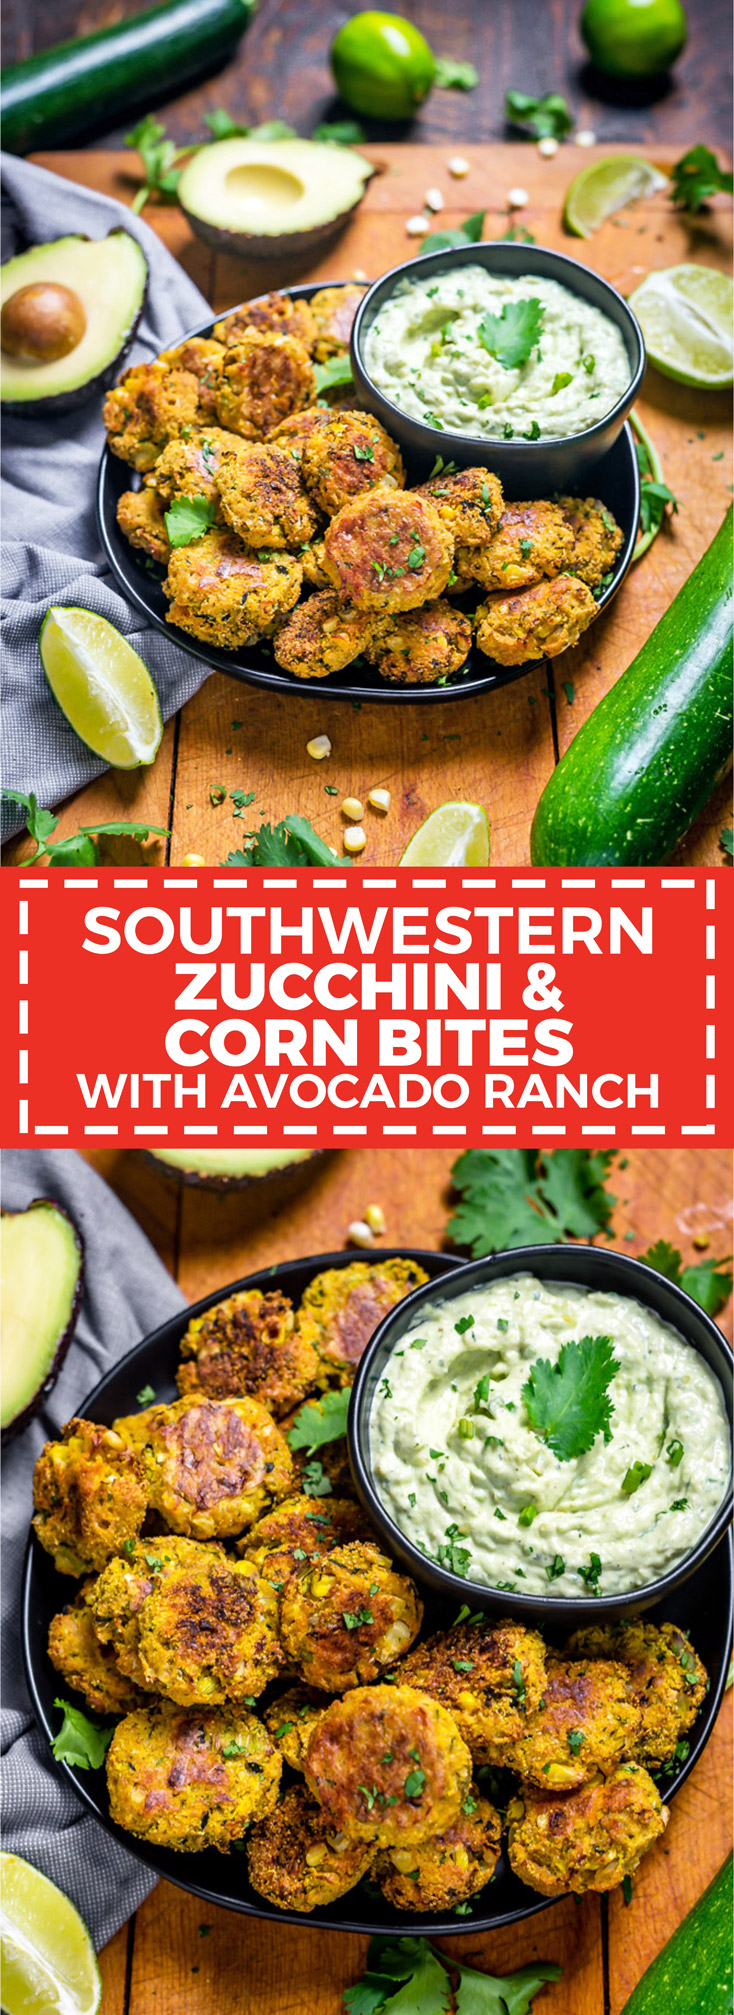 Southwestern Zucchini and Corn Bites with Avocado Ranch. No need to break out the fryer for this (conveniently gluten-free) recipe-- these bite-sized, veggie-loaded treats are baked until crisp on the outside and tender on the inside. | hostthetoast.com